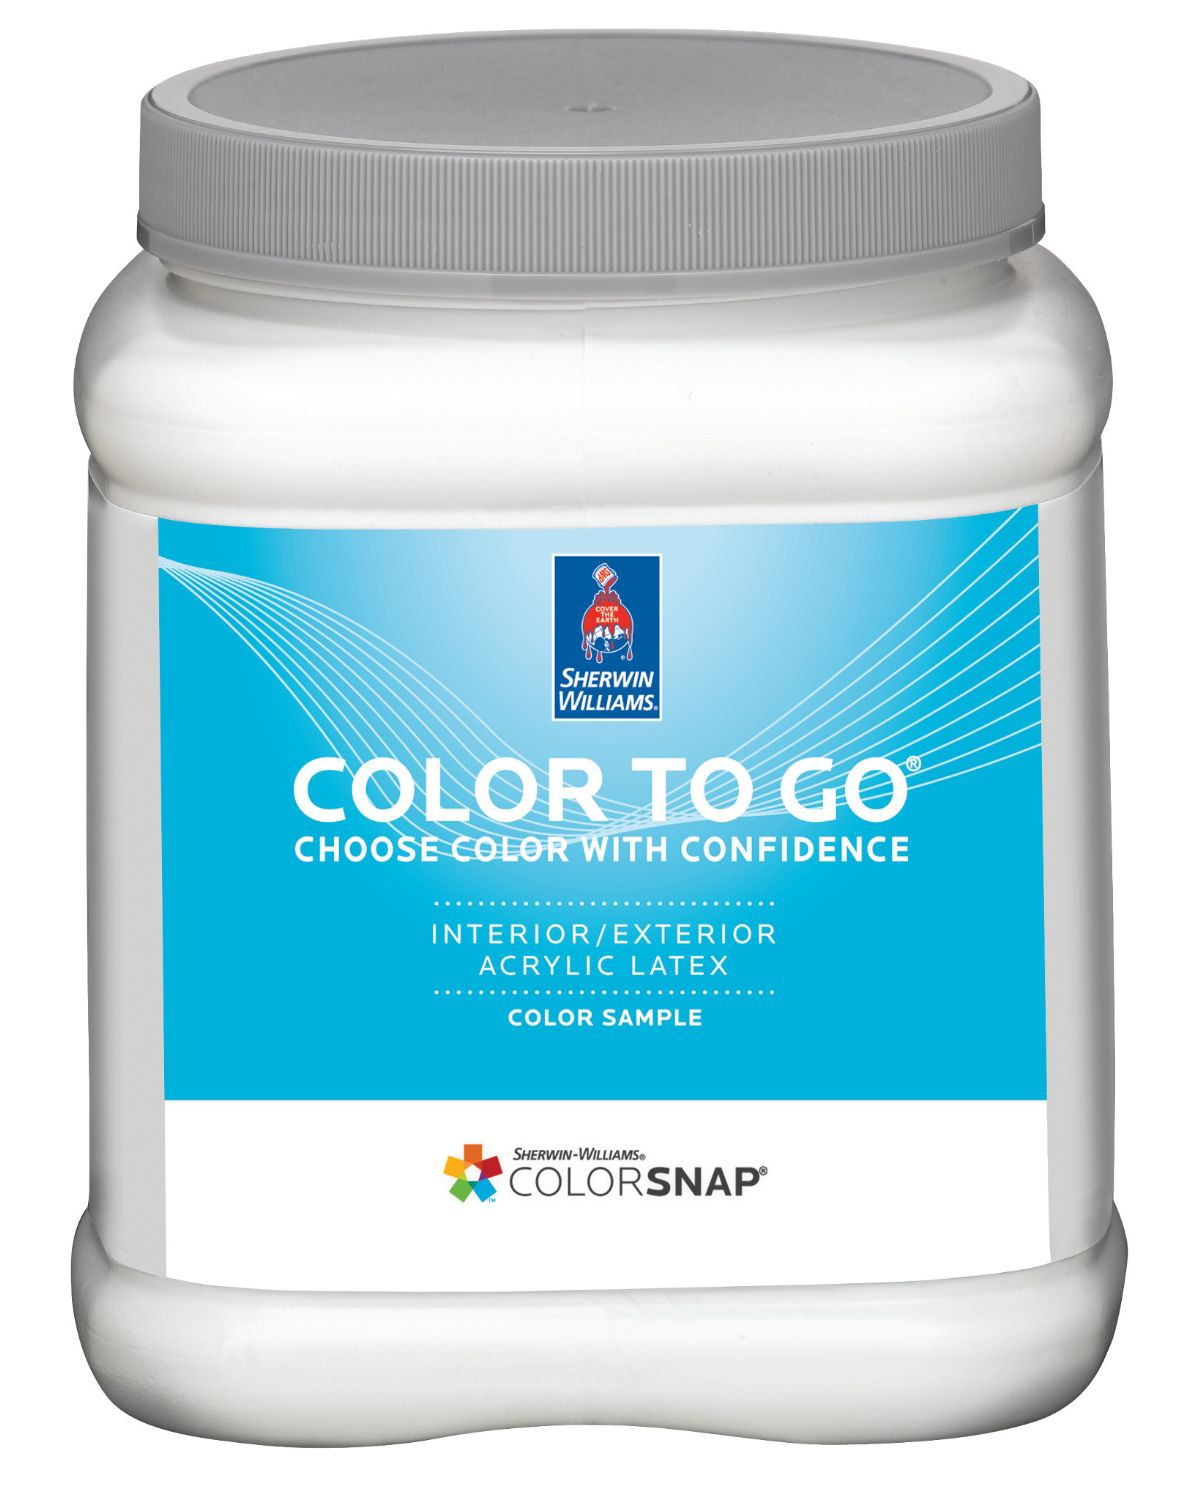 Color To Go Paint Color Sample Sherwin Williams